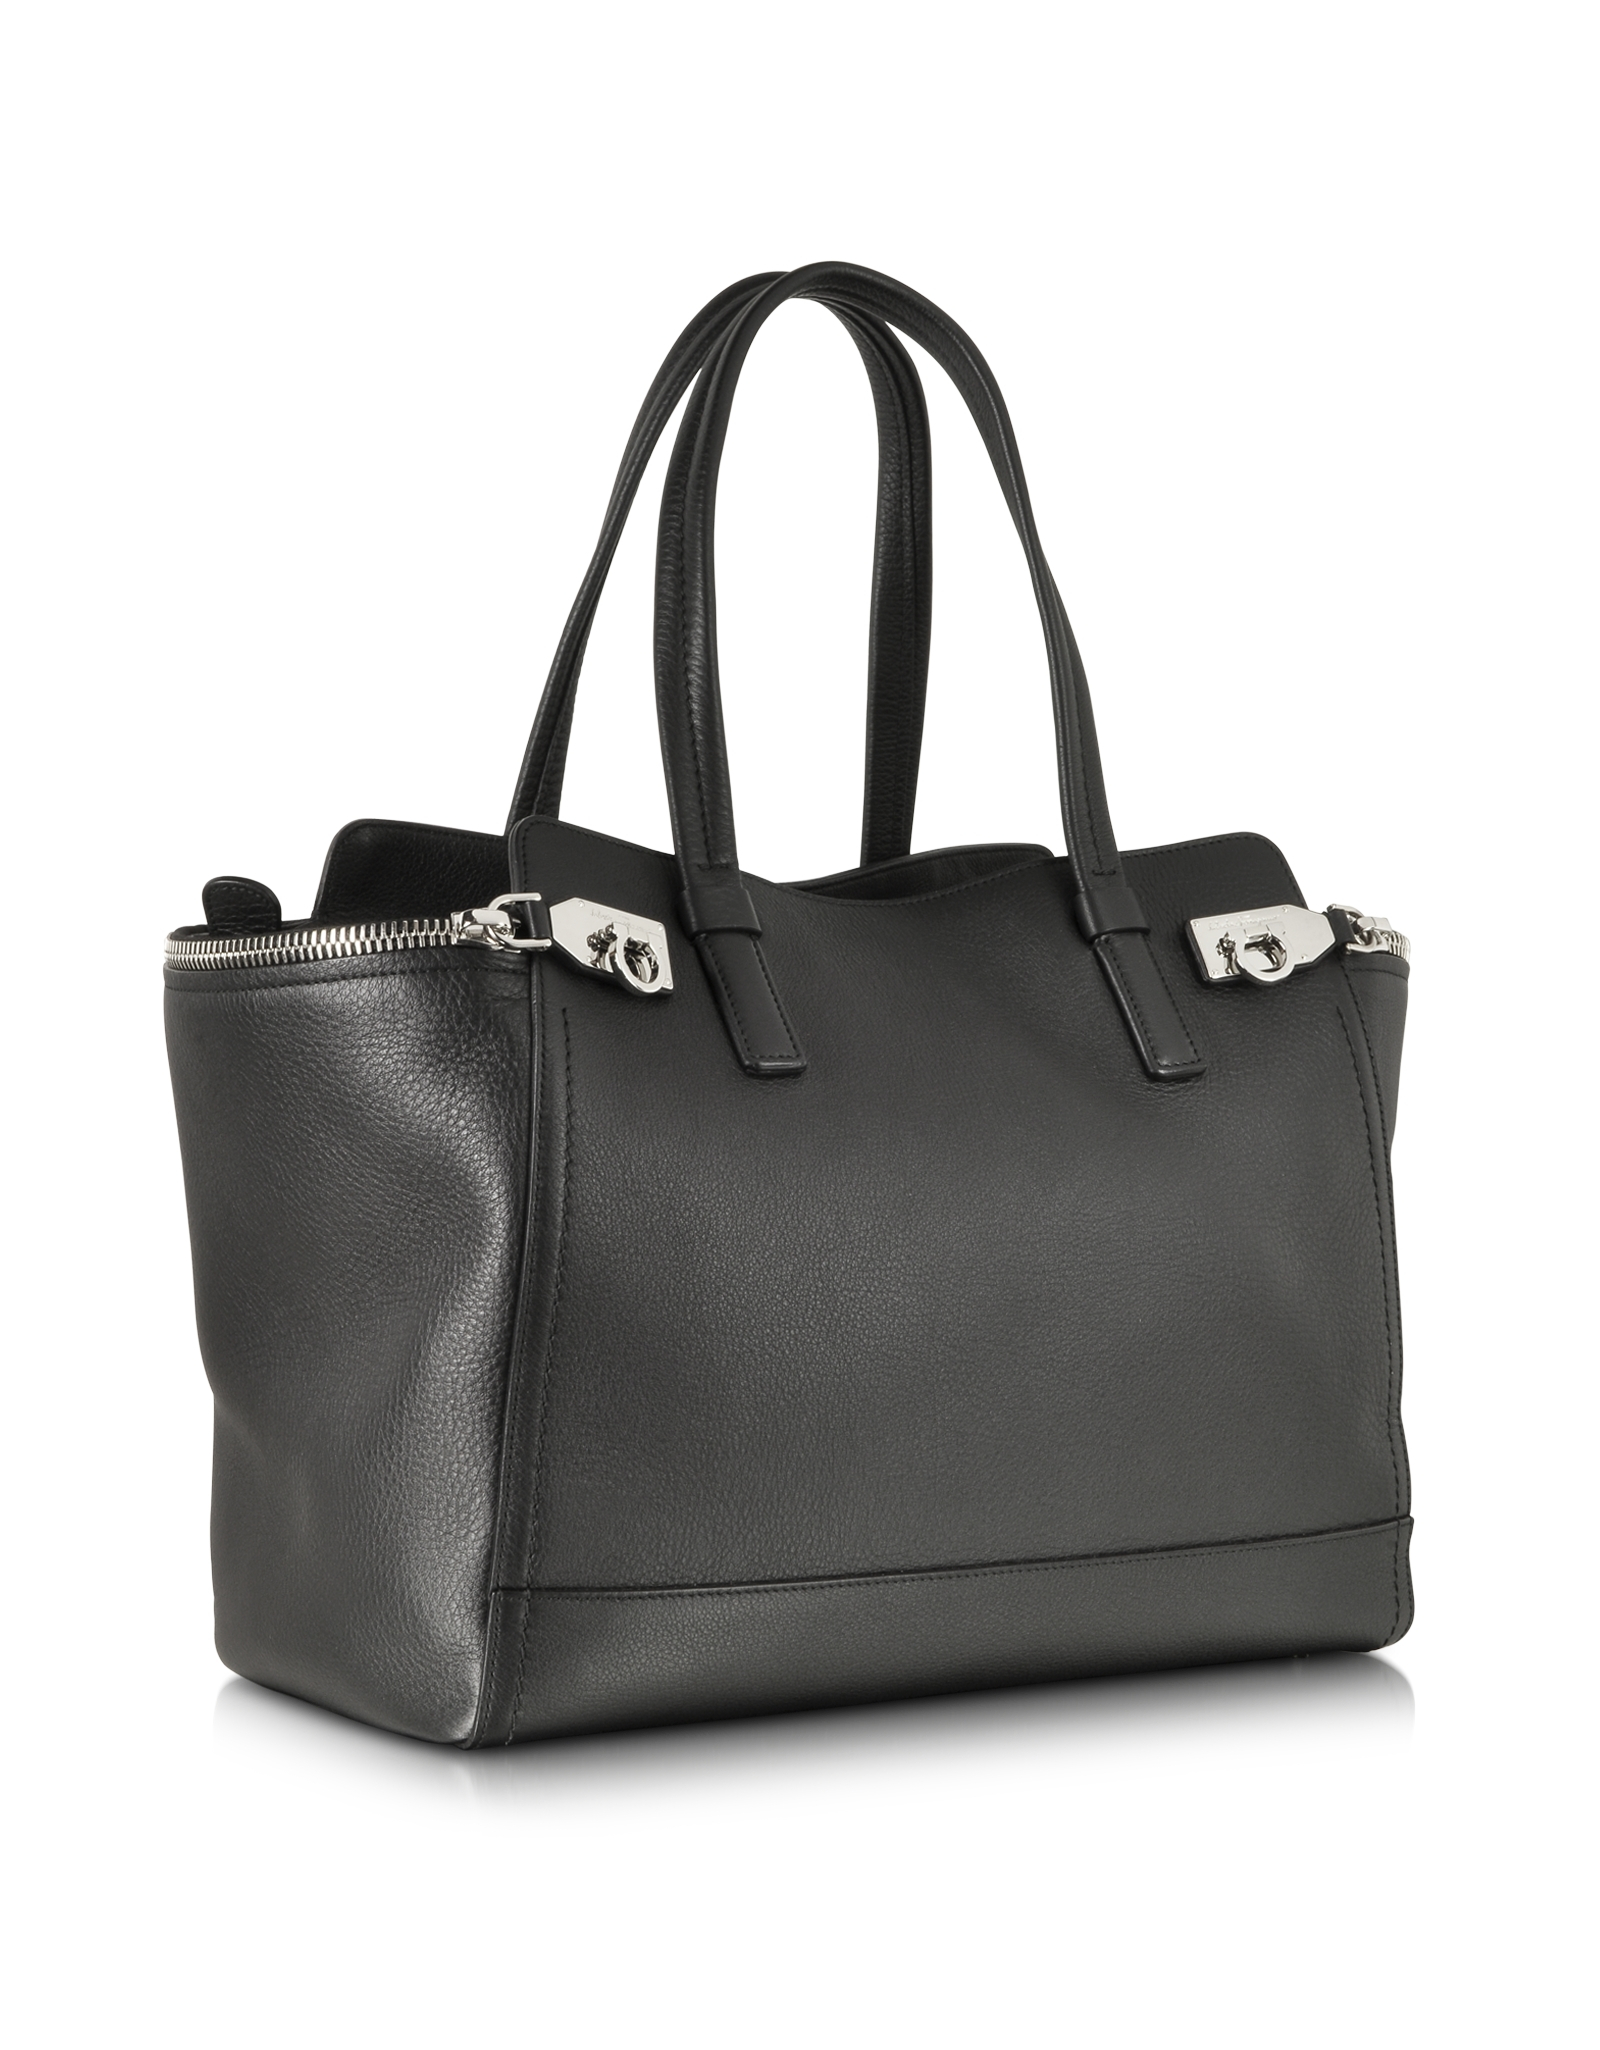 6561b3e649a0 Lyst - Ferragamo Verve Medium Leather Tote in Black